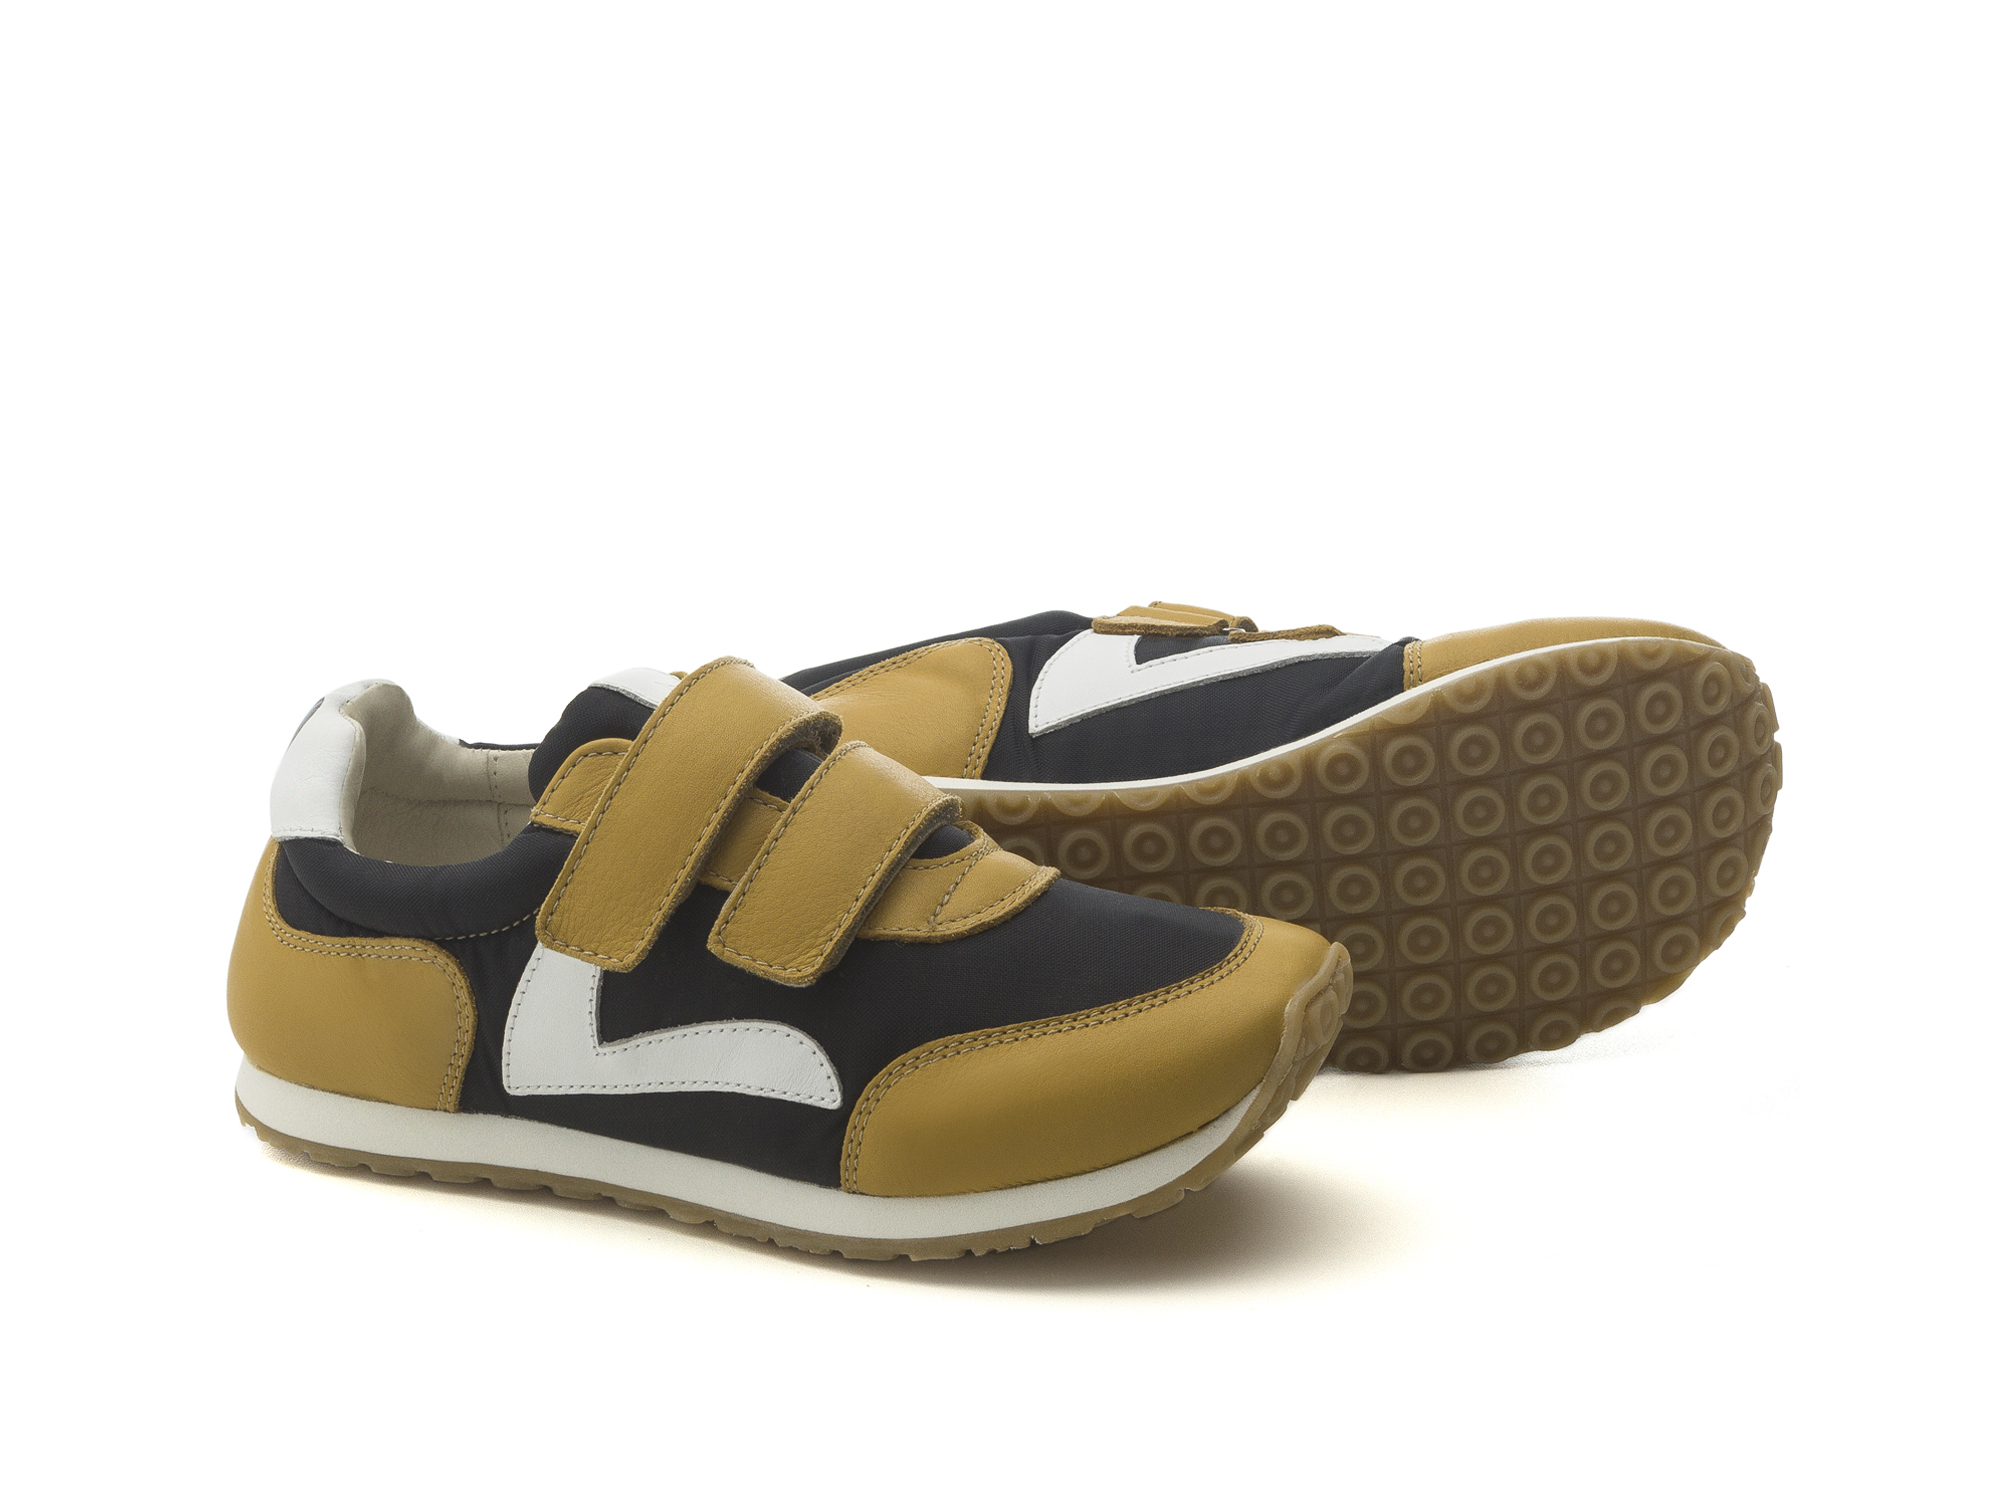 Tênis Jump Black Nylon/ Yellow Blur Junior 4 à 8 anos - 2